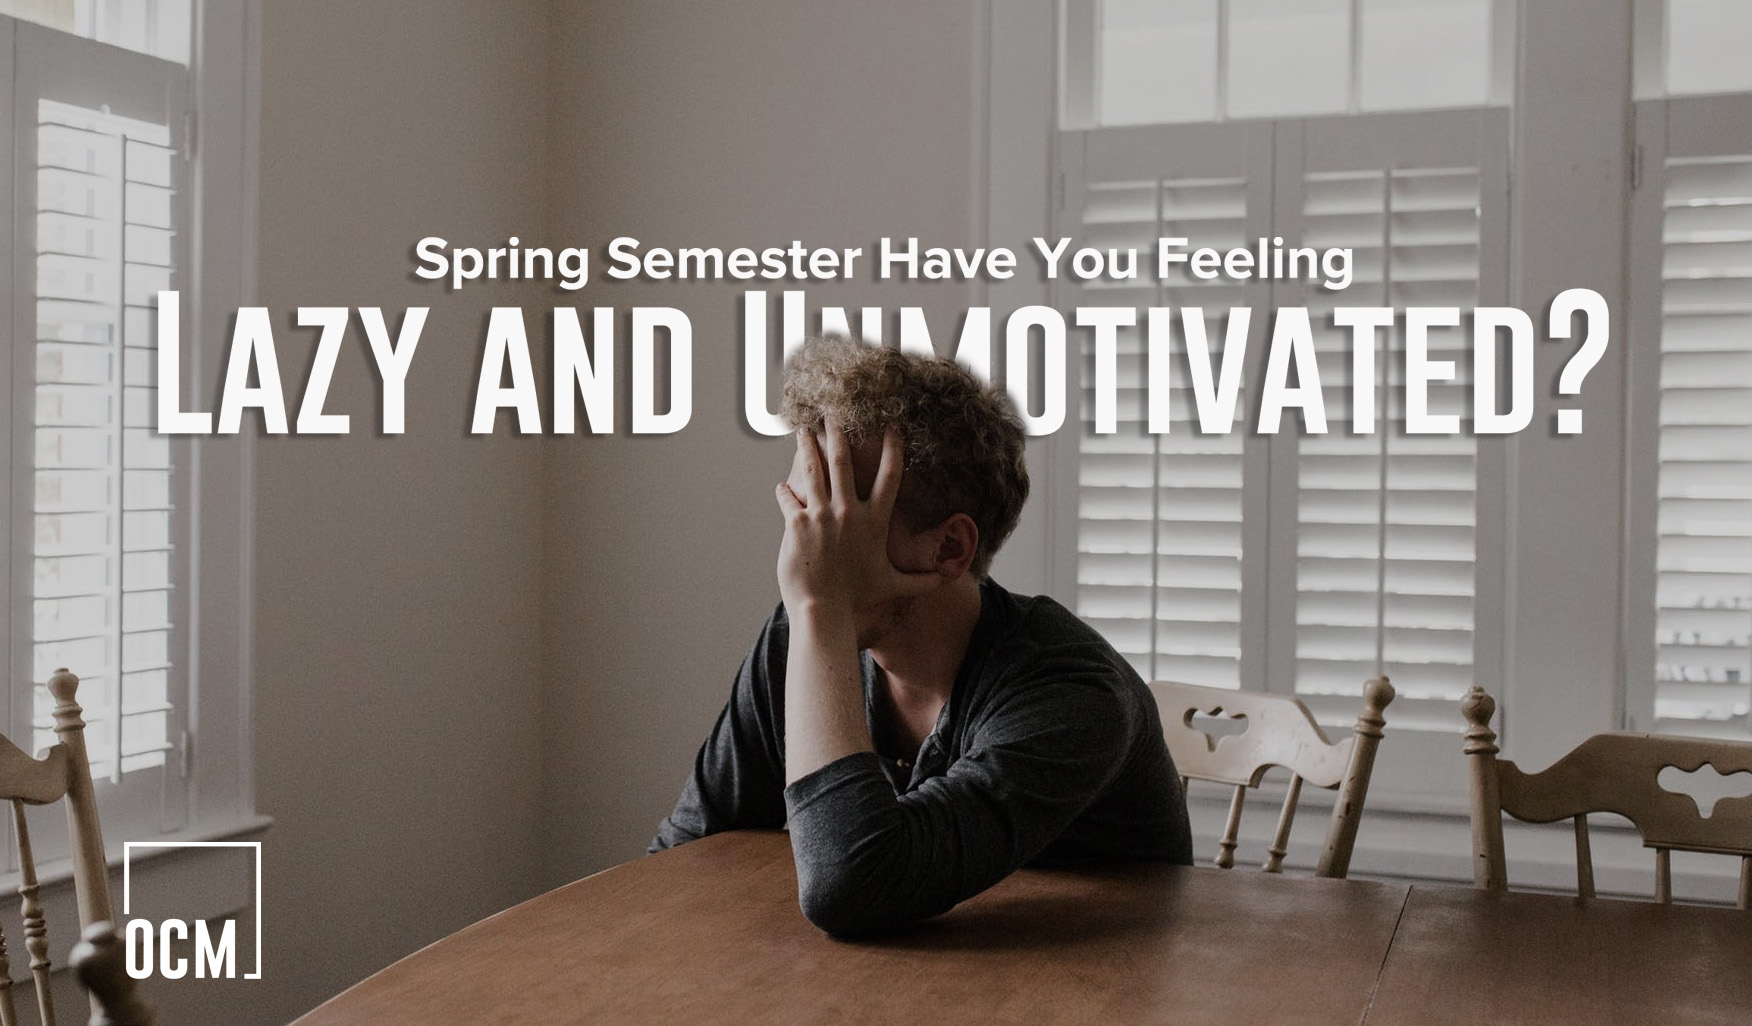 Spring Semester Have You Feeling Lazy and Unmotivated?